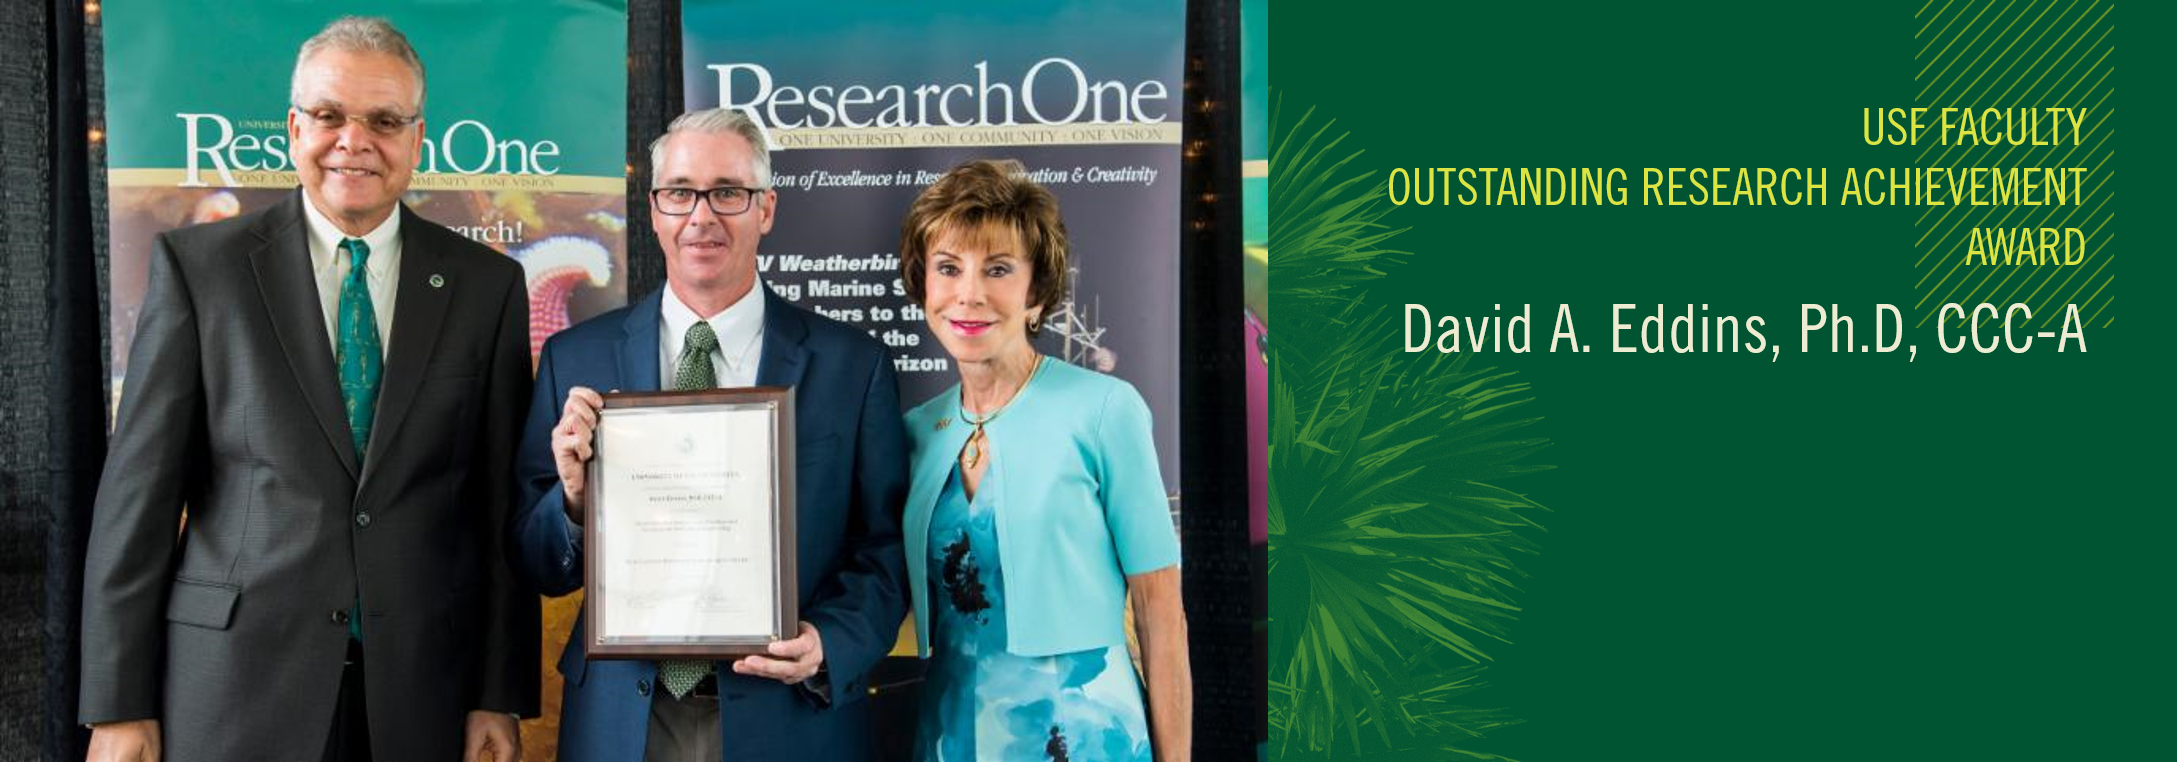 Picture of Dr. Eddins' Faculty Outstanding Research Achievement Award recipient